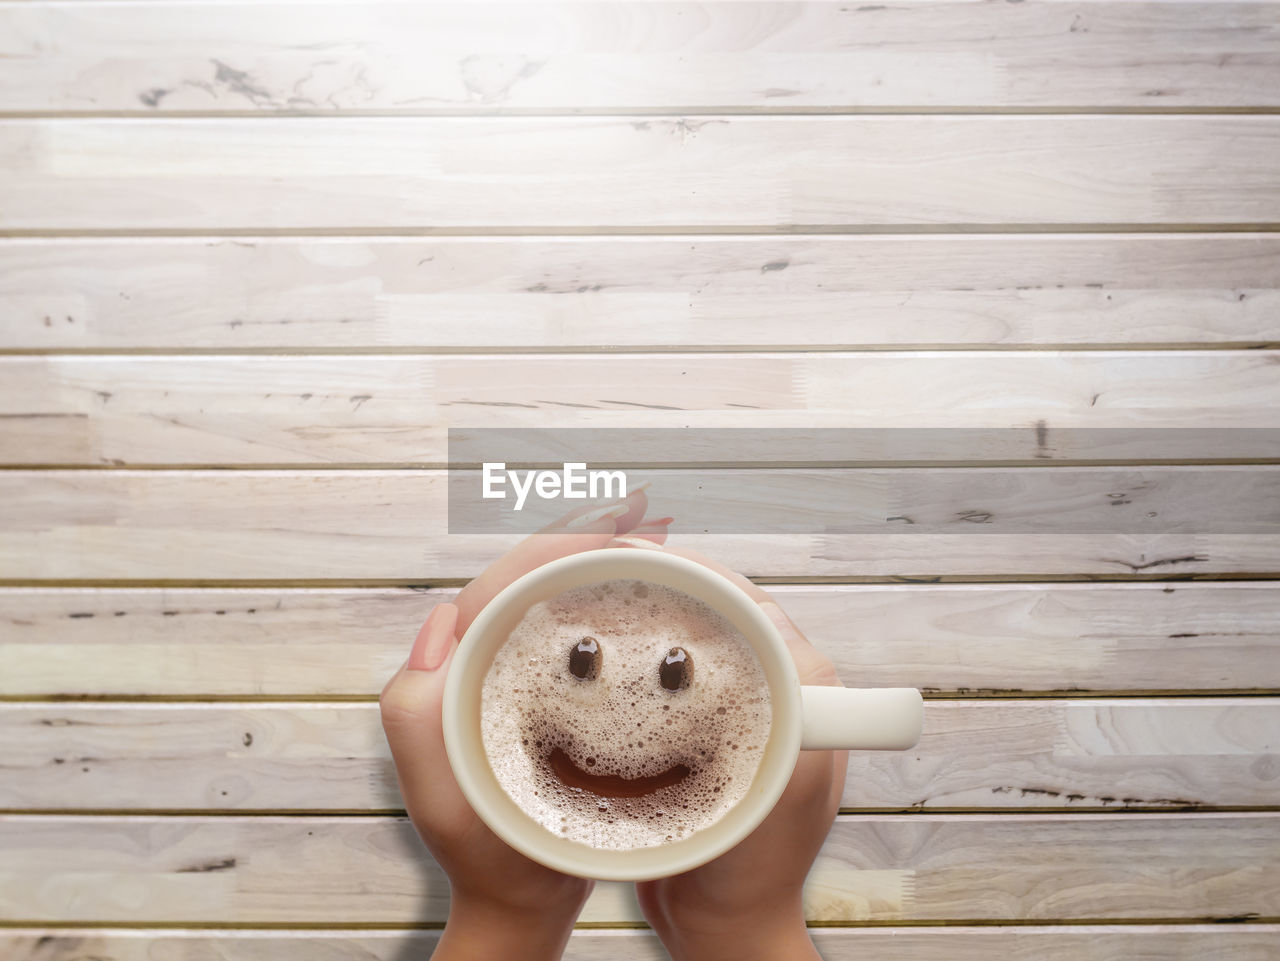 wood - material, one person, coffee, drink, food and drink, refreshment, coffee - drink, directly above, cup, coffee cup, mug, human body part, real people, holding, human hand, frothy drink, indoors, unrecognizable person, lifestyles, hand, wood